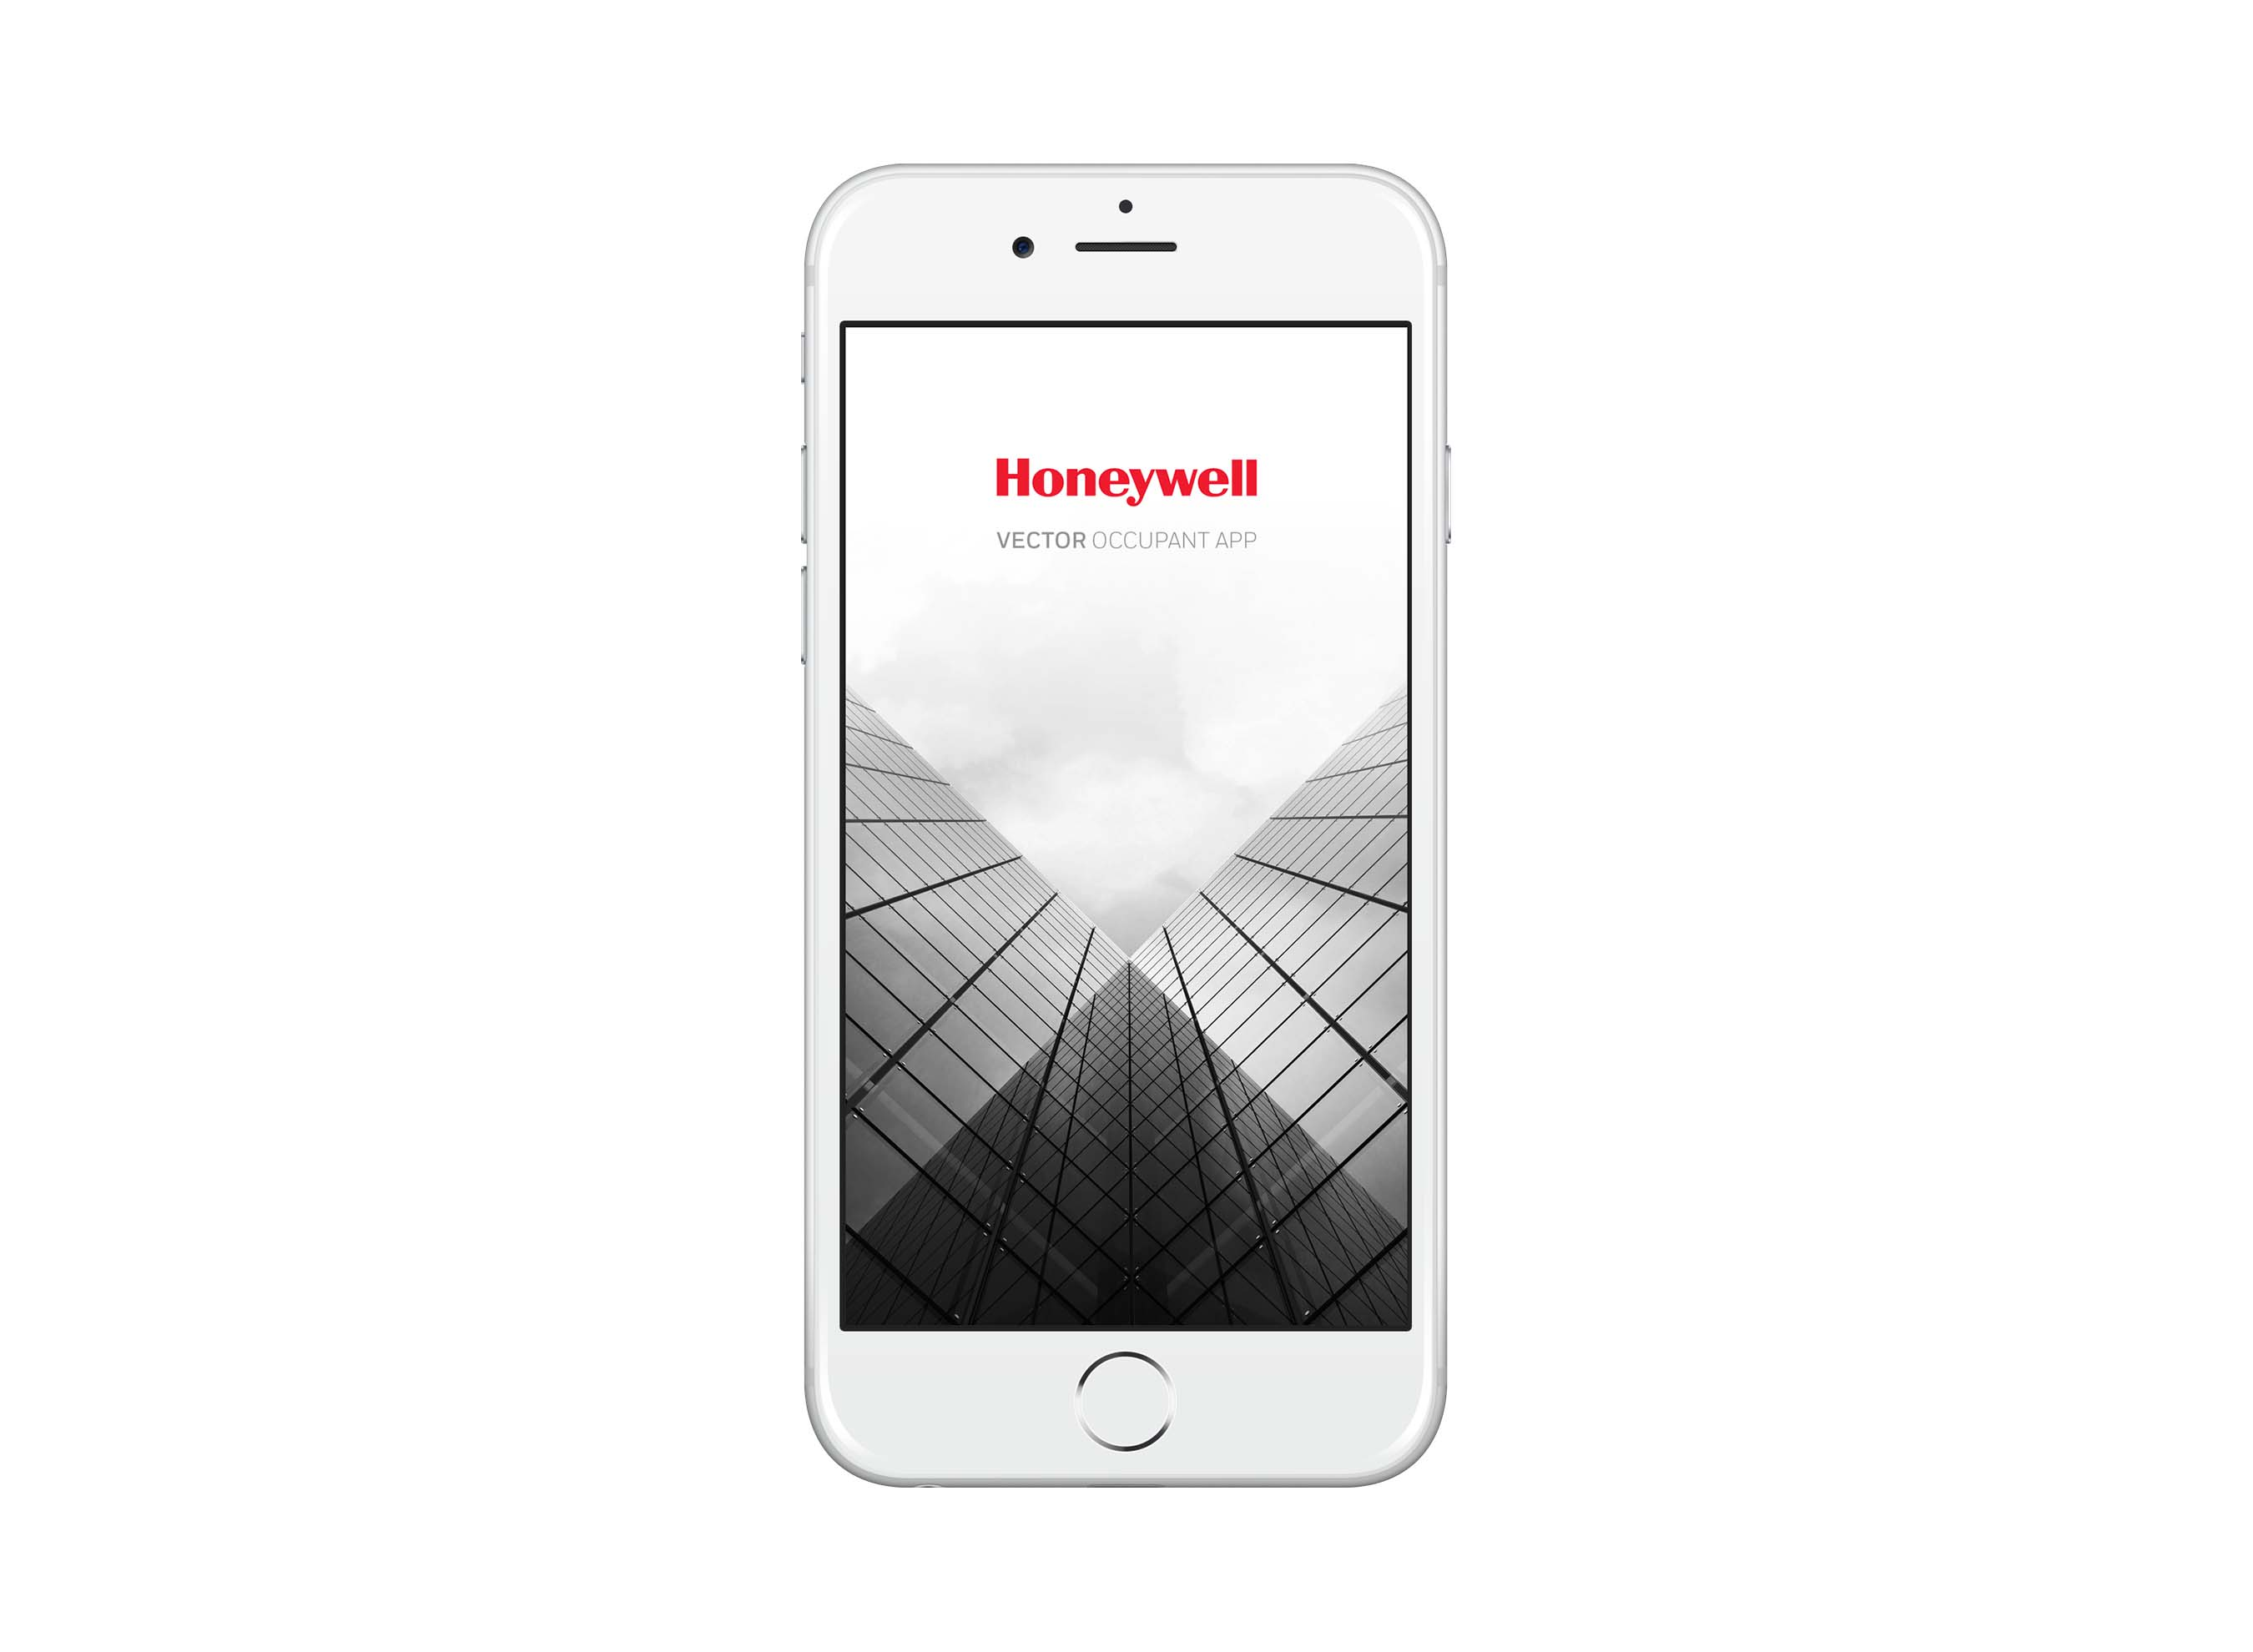 Honeywell Vector Occupant App combines the convenience of mobile devices with connected building features to give users more control over their comfort and ability to securely move about the building.